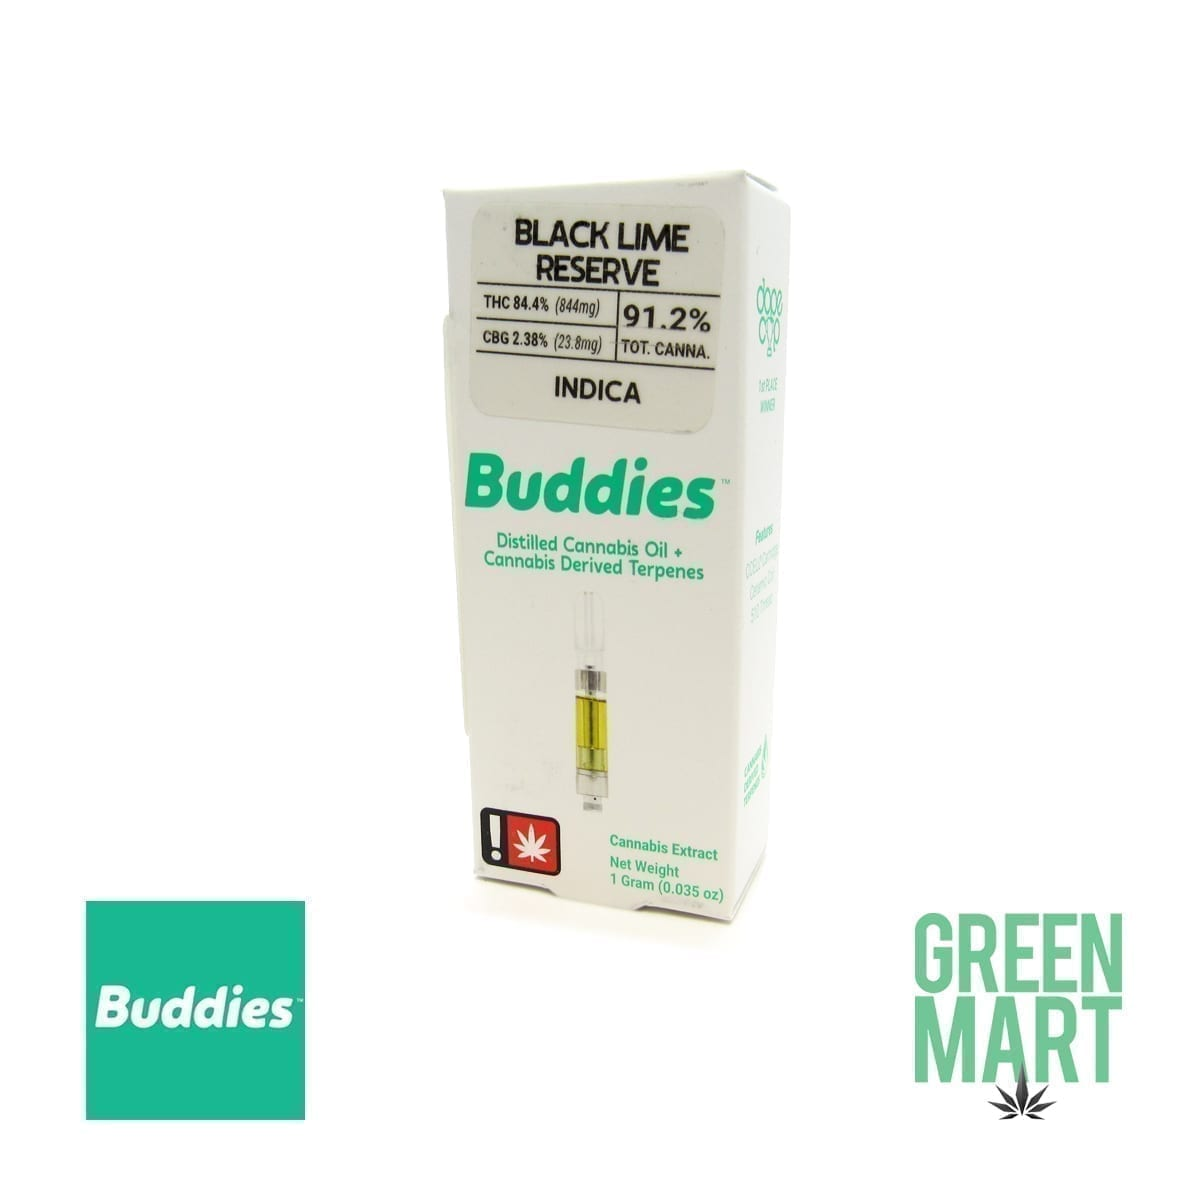 Buddies Brand Distillate Cartridge - Black Lime Reserve